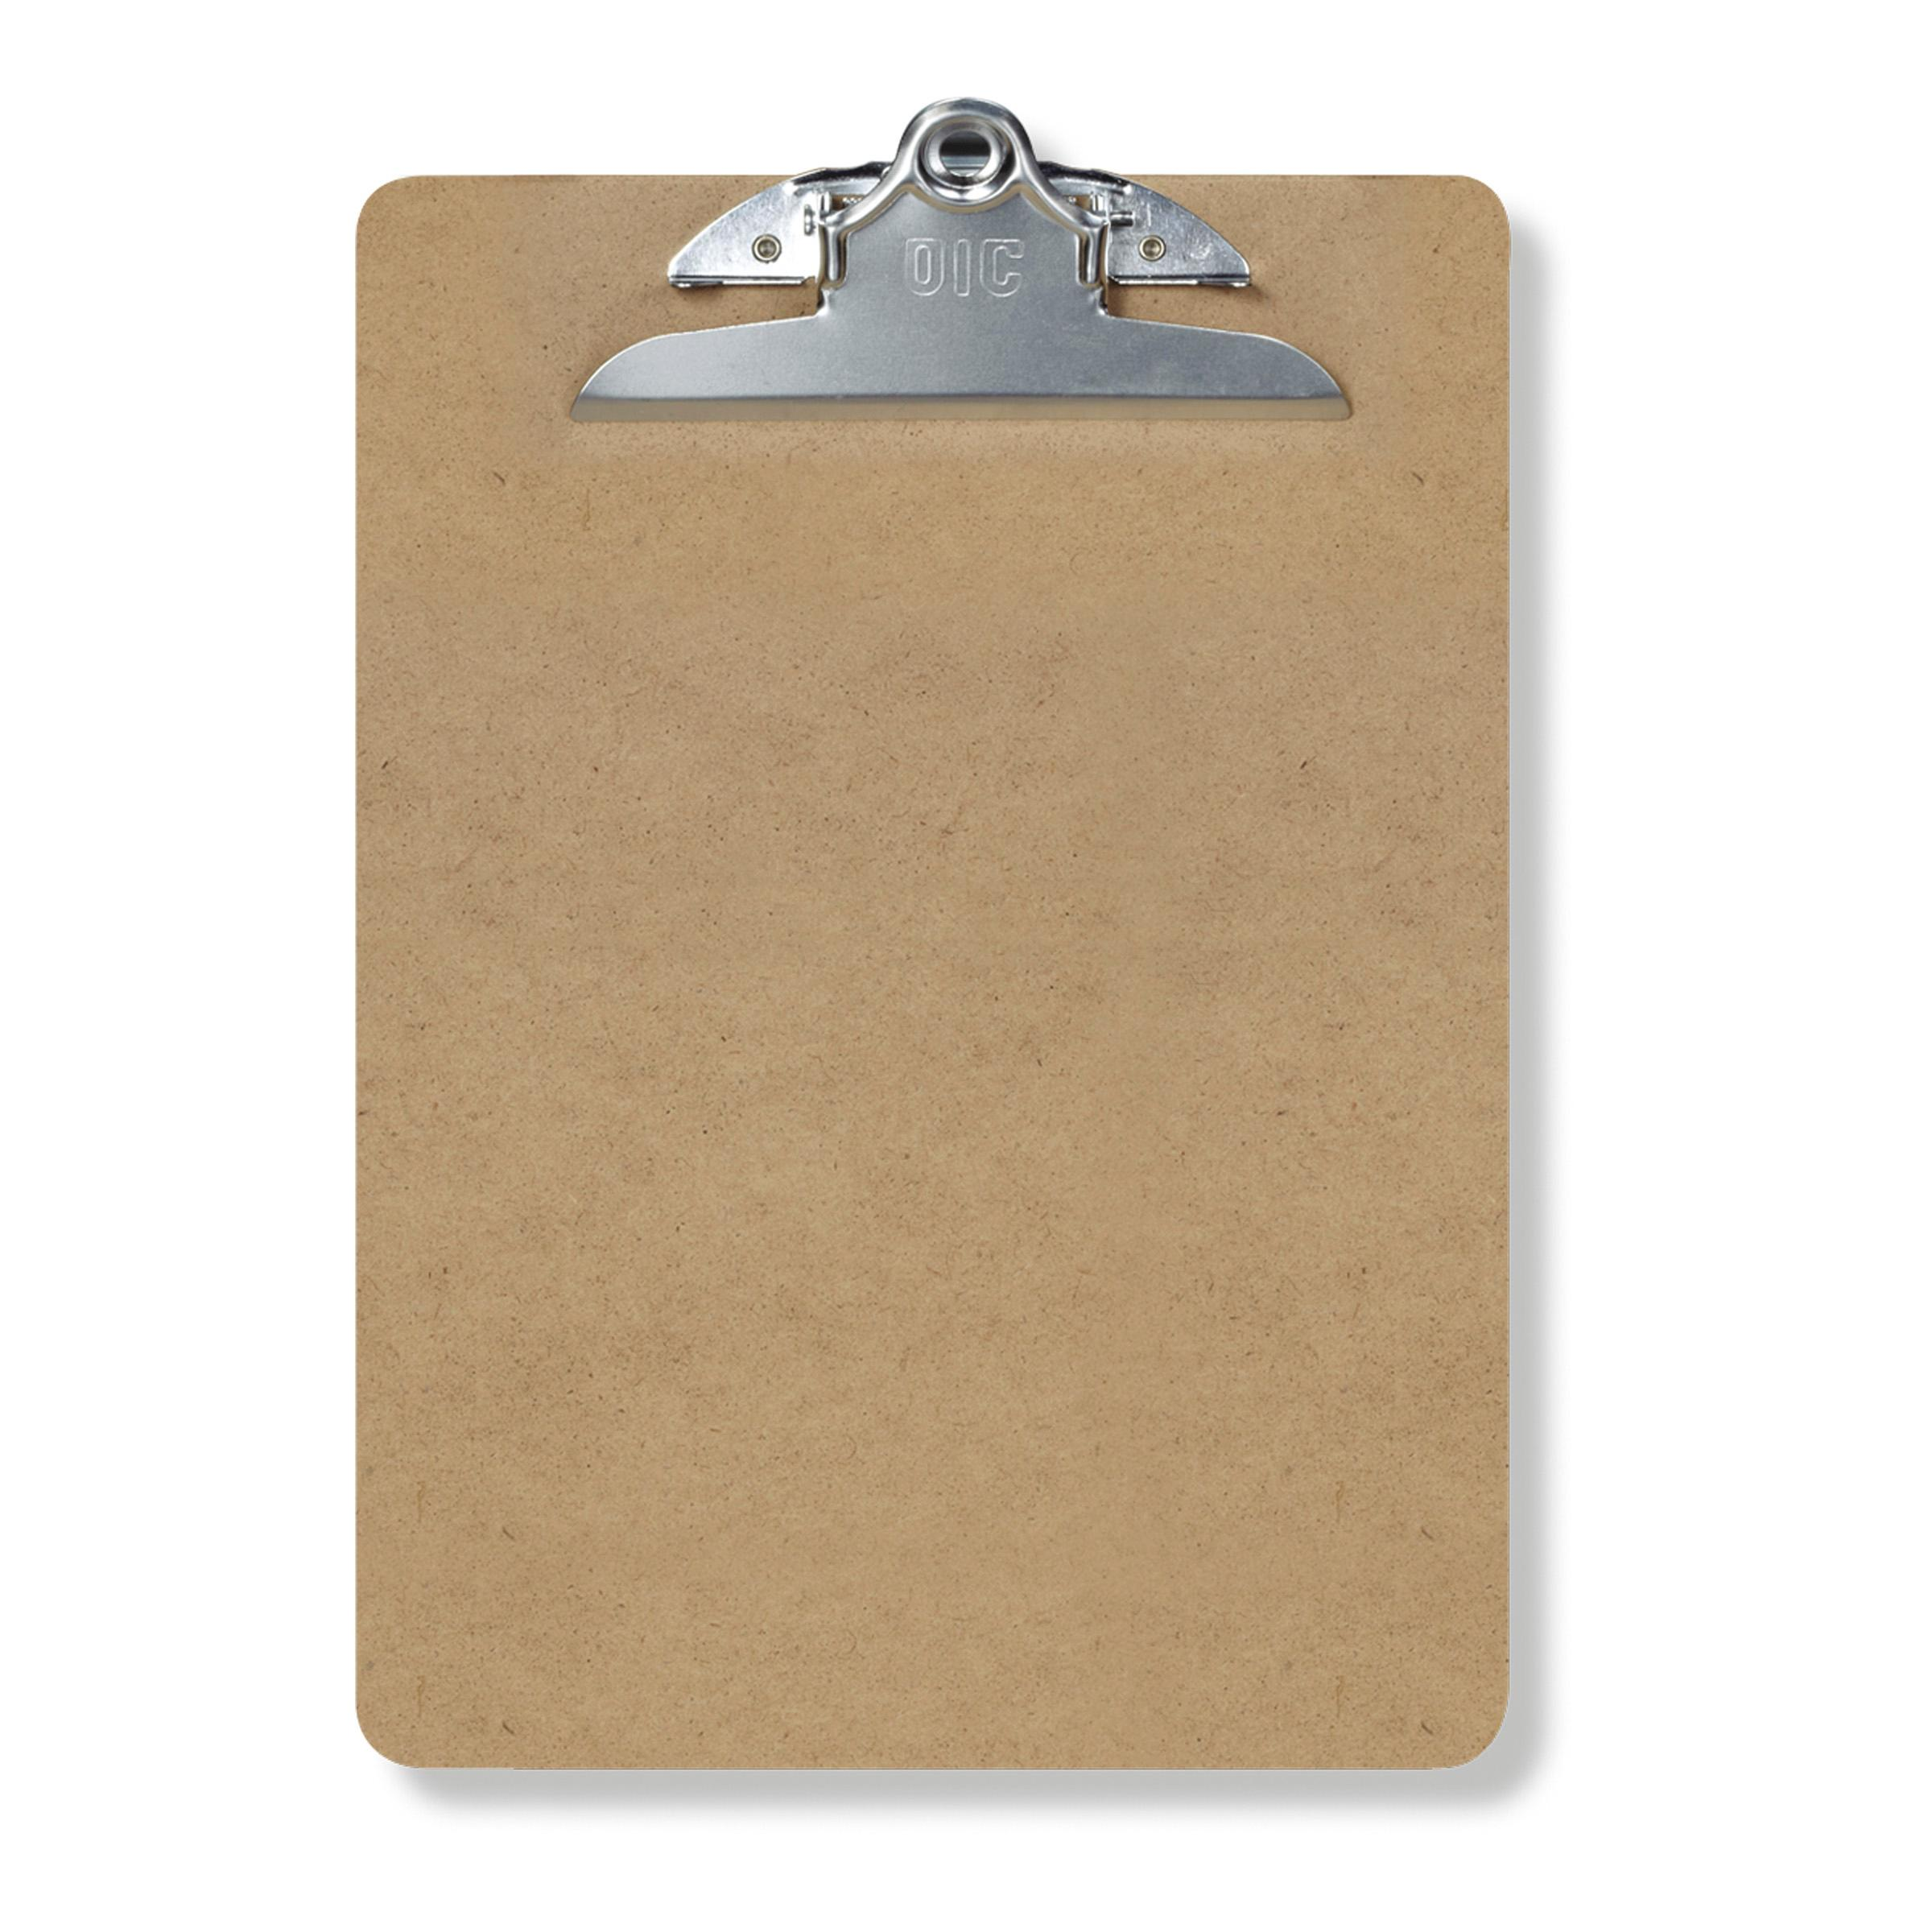 amazoncom officemate wood clipboard letter size With letter size clipboard